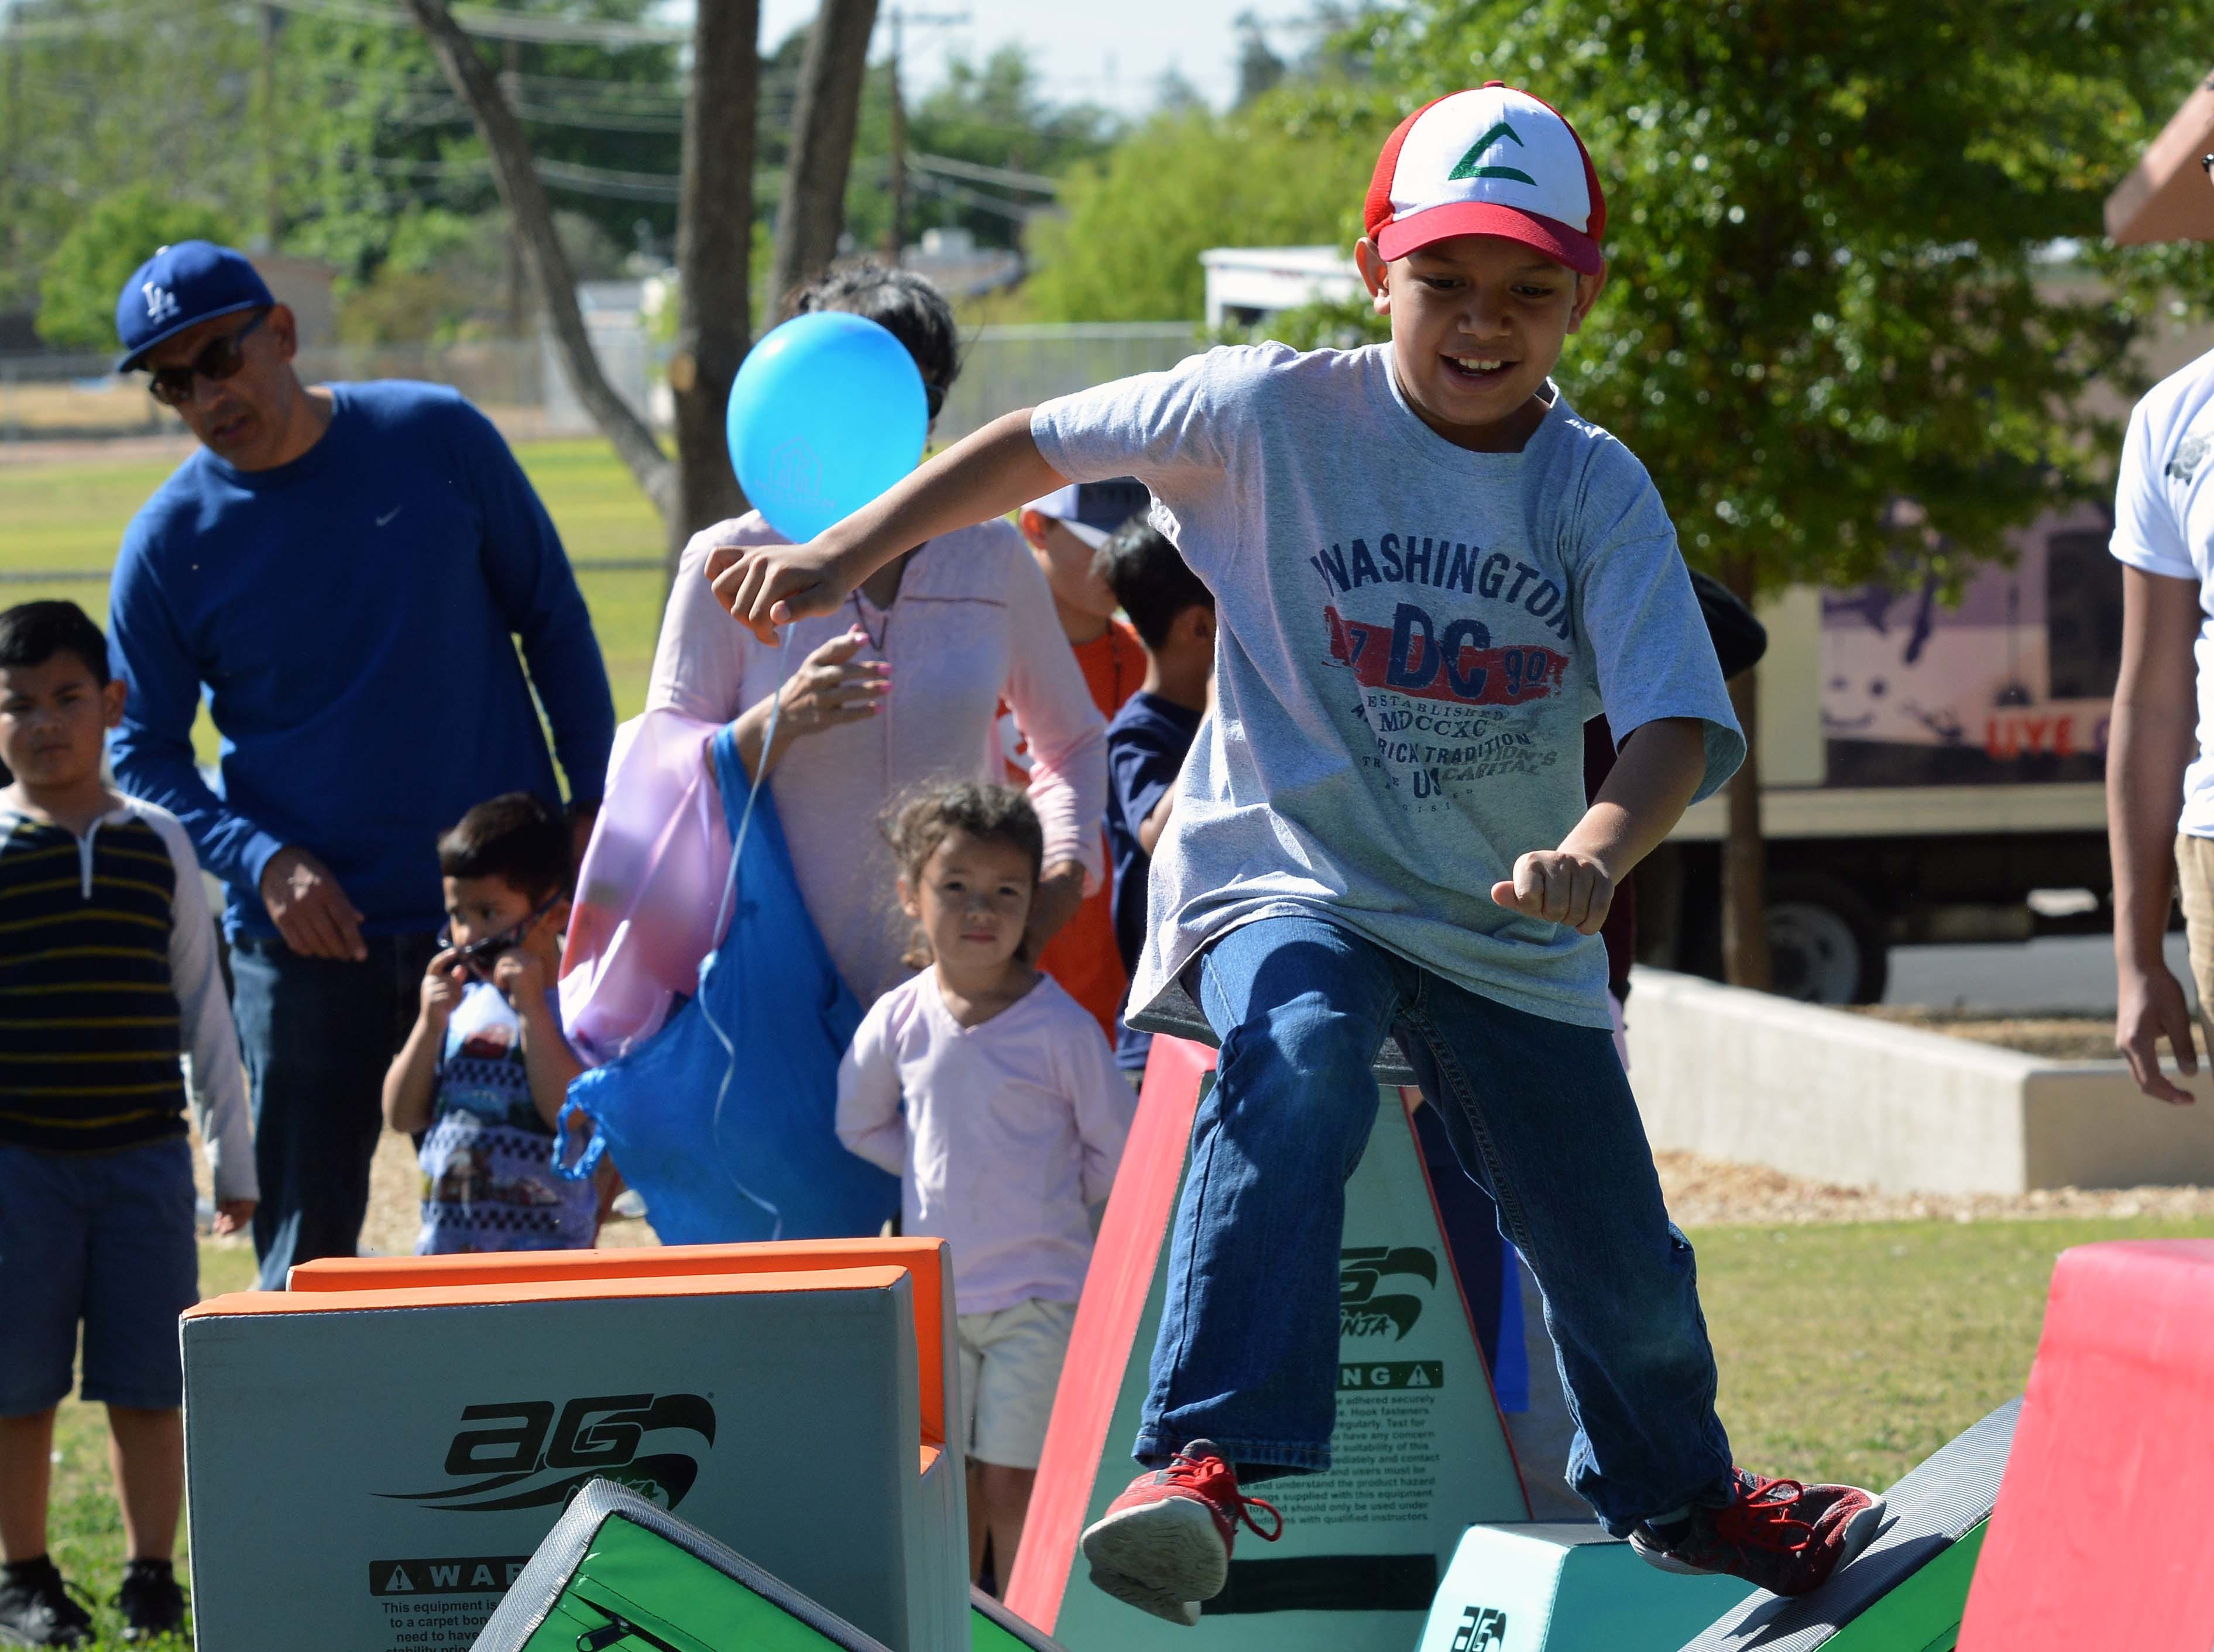 Nathaniel Benavidez runs the obstacle course that was set up as one of the many activities for the children to enjoy during this year's SpringFest at Young Park on Saturday, April 20, 2019.